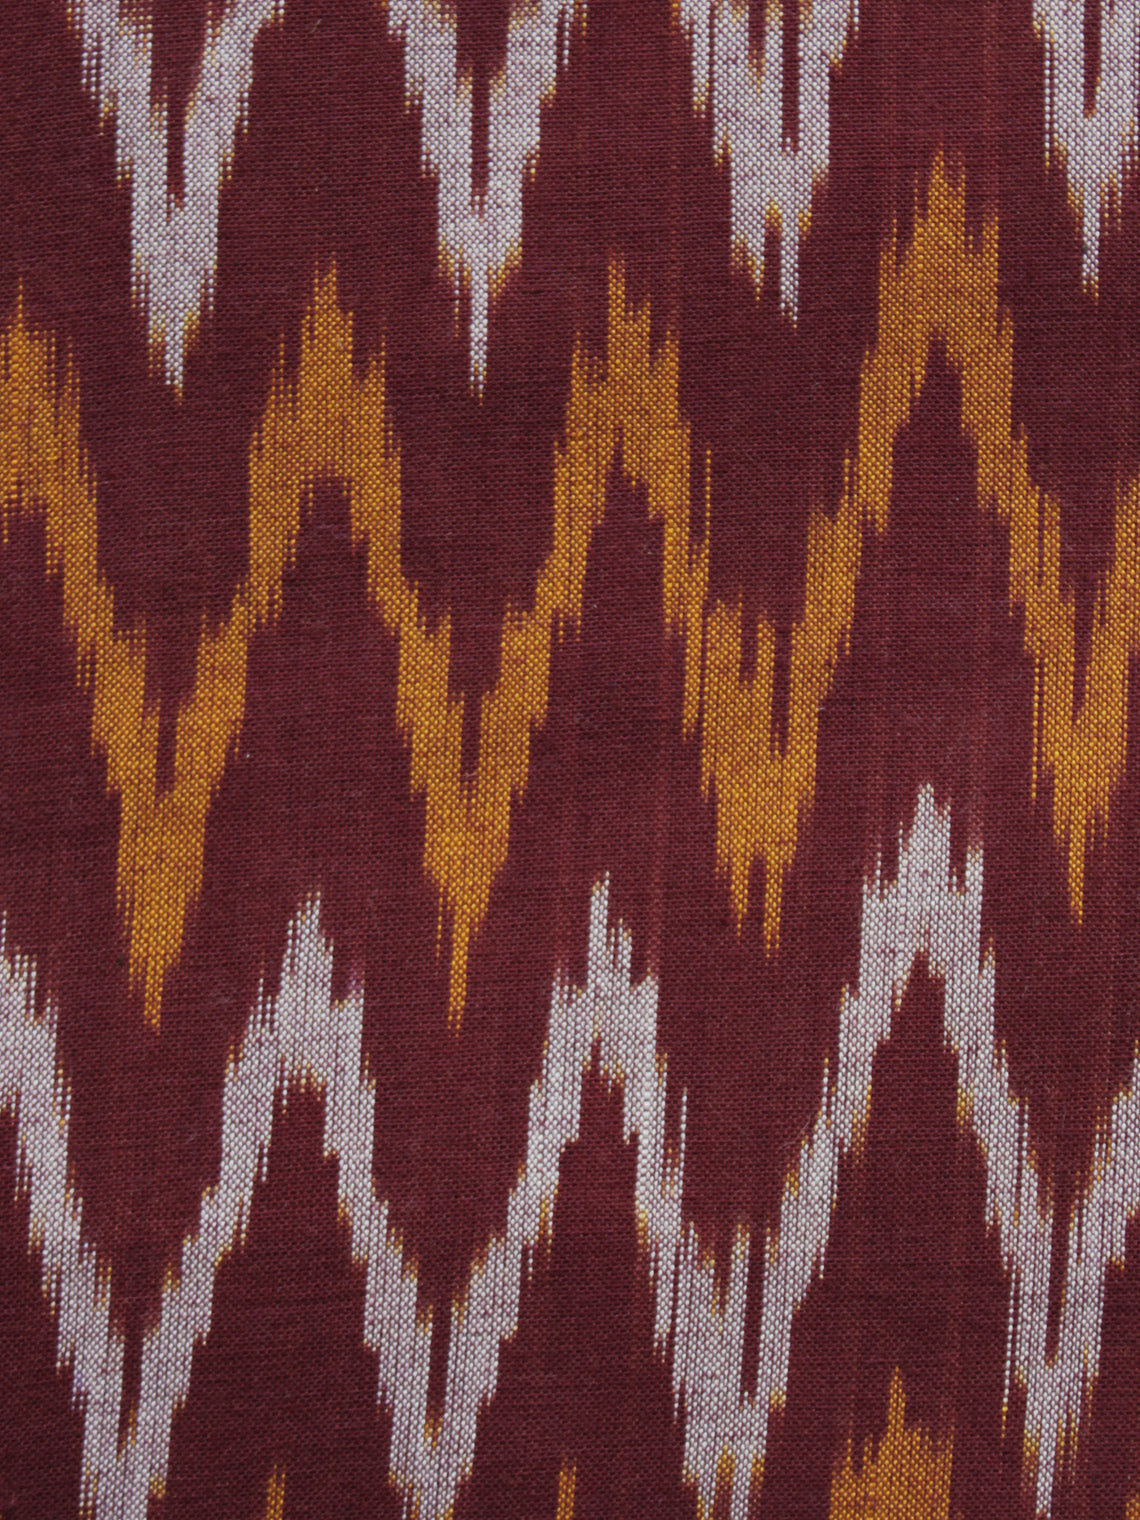 Maroon Orange Ivory Pochampally Hand Woven Ikat Fabric Per Meter - F002F909